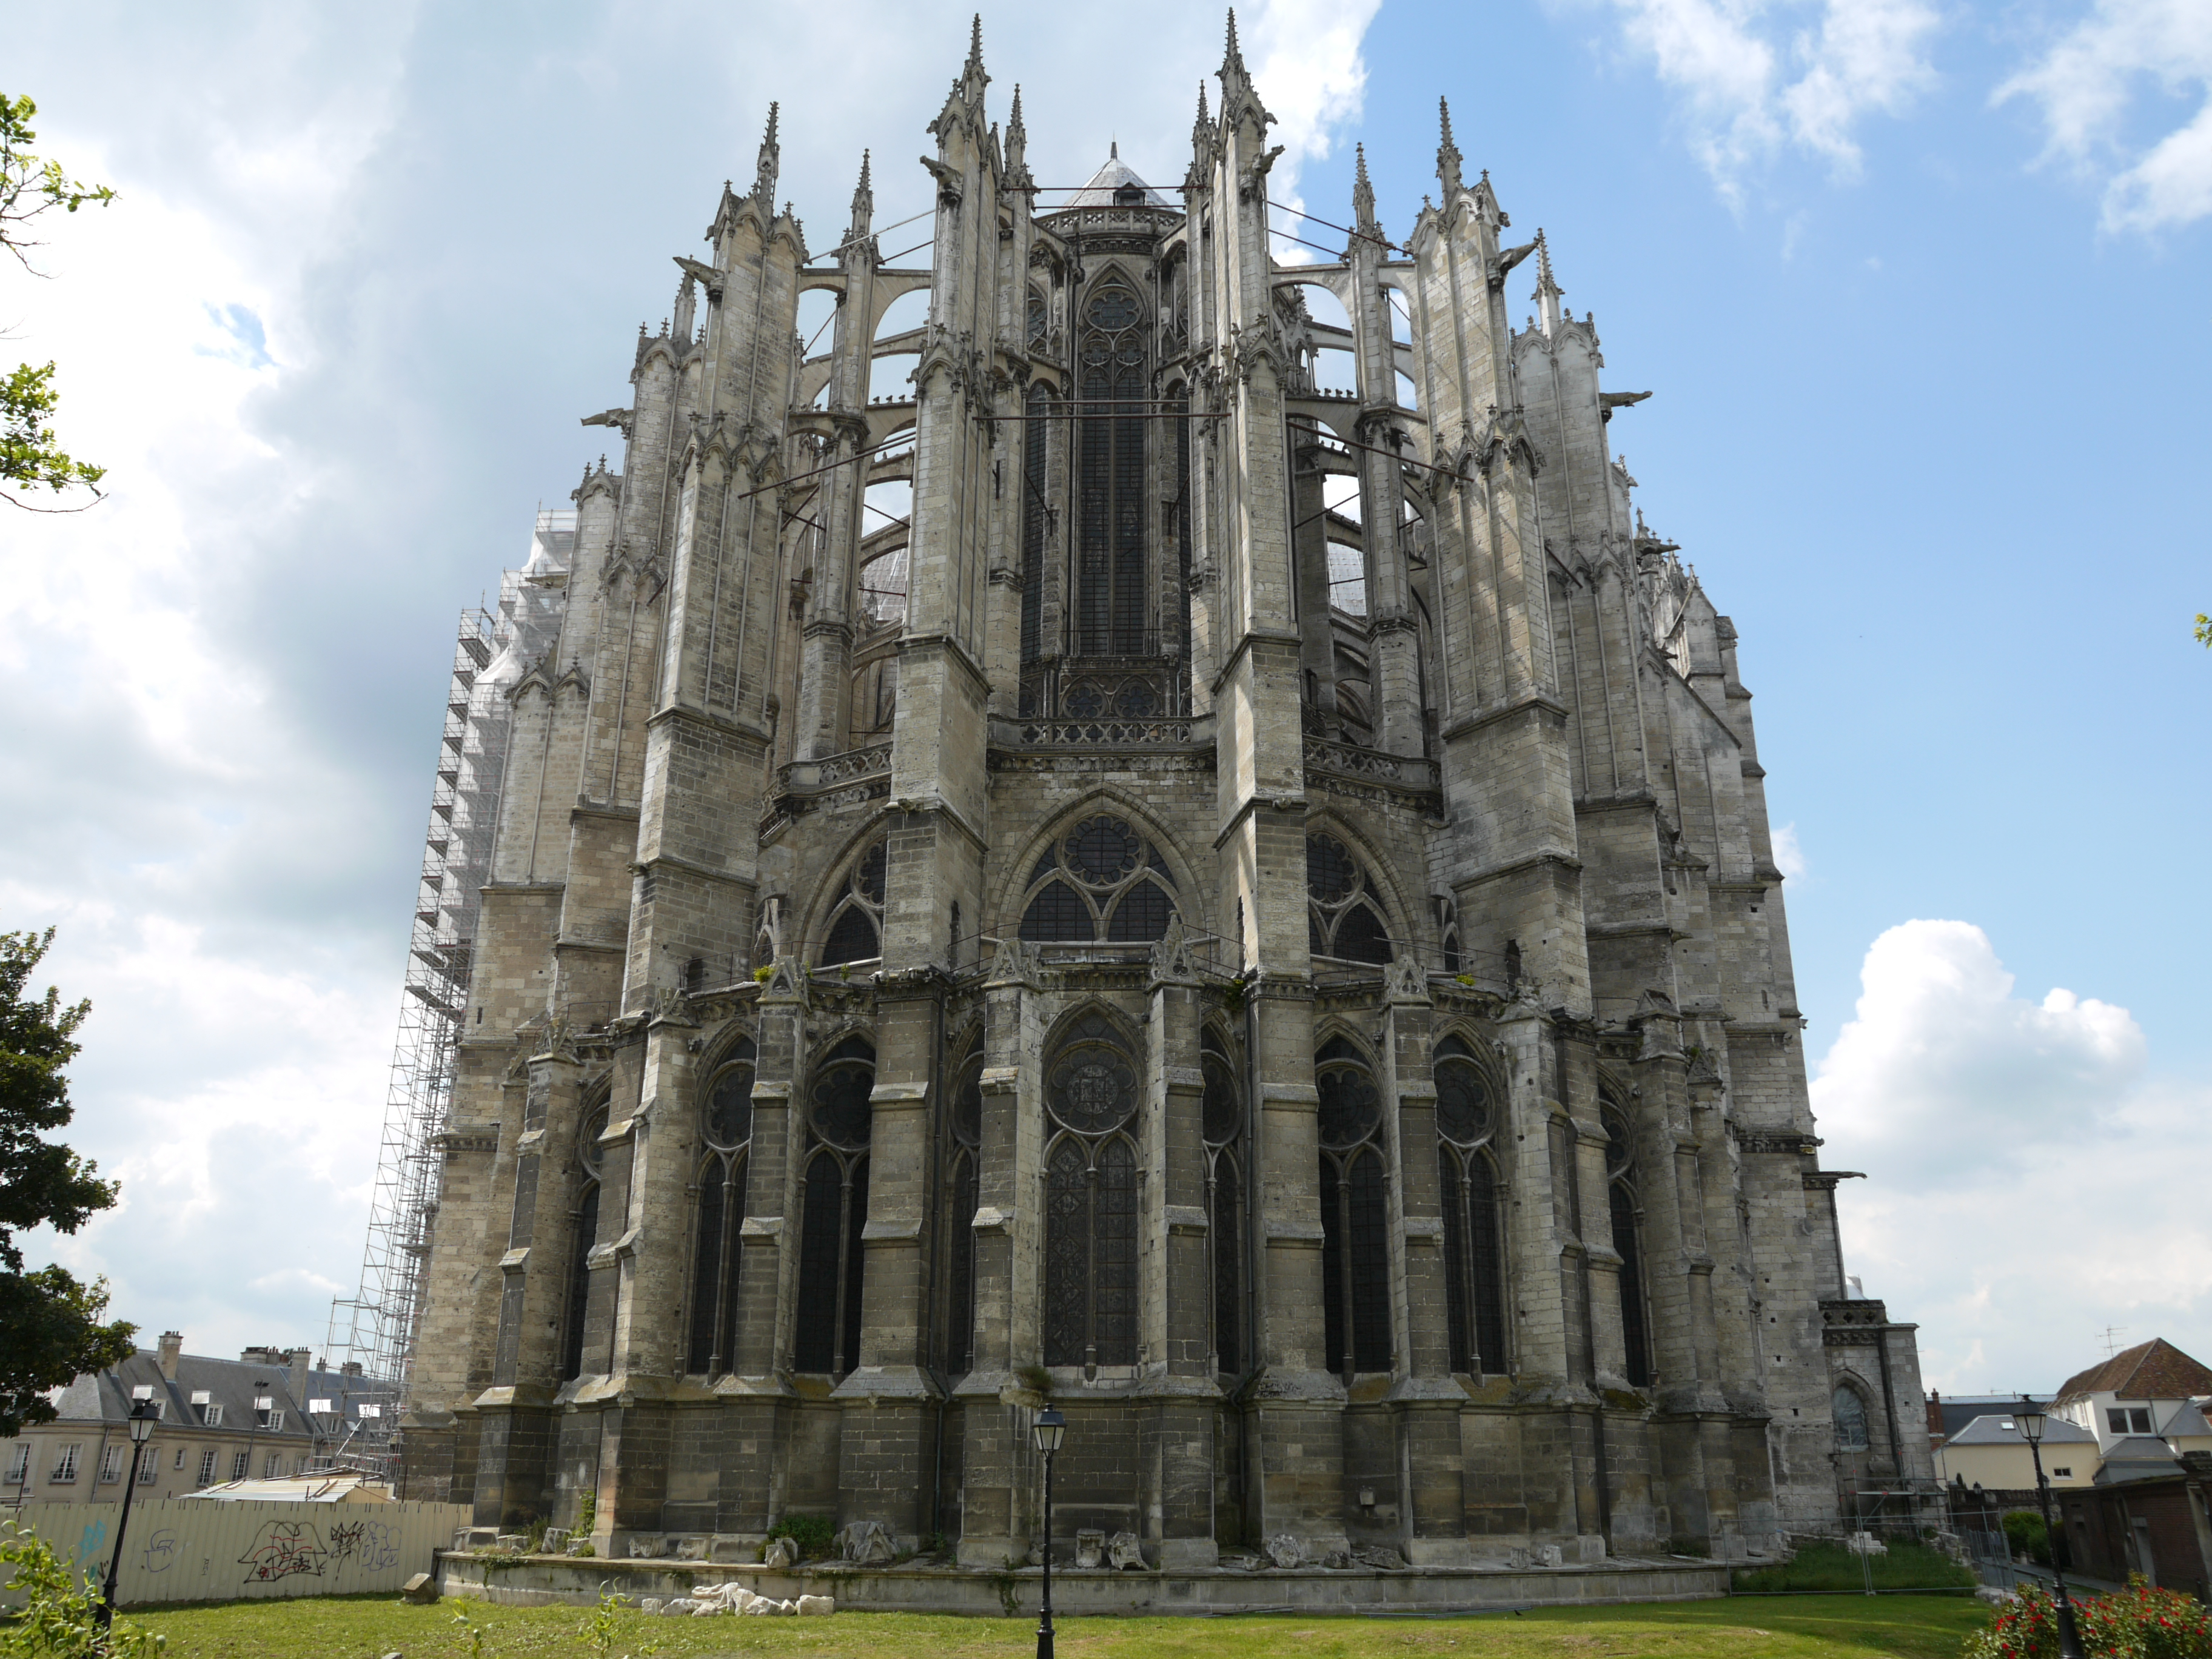 medieval cathedrals research These are the sources and citations used to research medieval cathedrals this bibliography was generated on cite this for me on thursday, march 5, 2015.